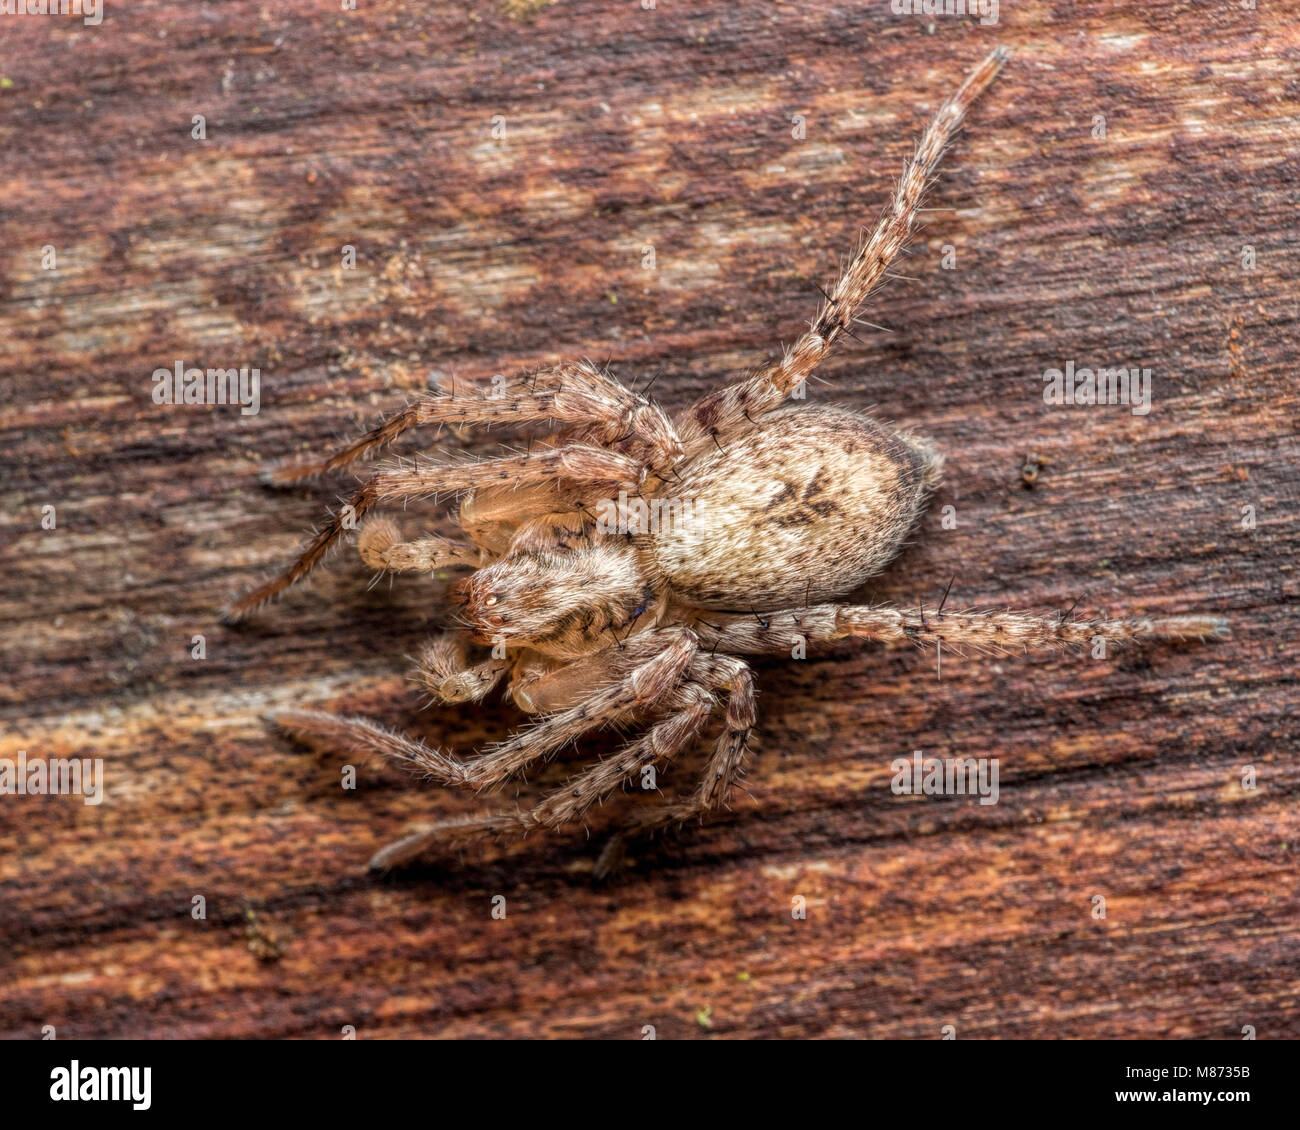 Buzzing spider (Anyphaena accentuata) resting underneath bark on fencepost. Tipperary, Ireland - Stock Image